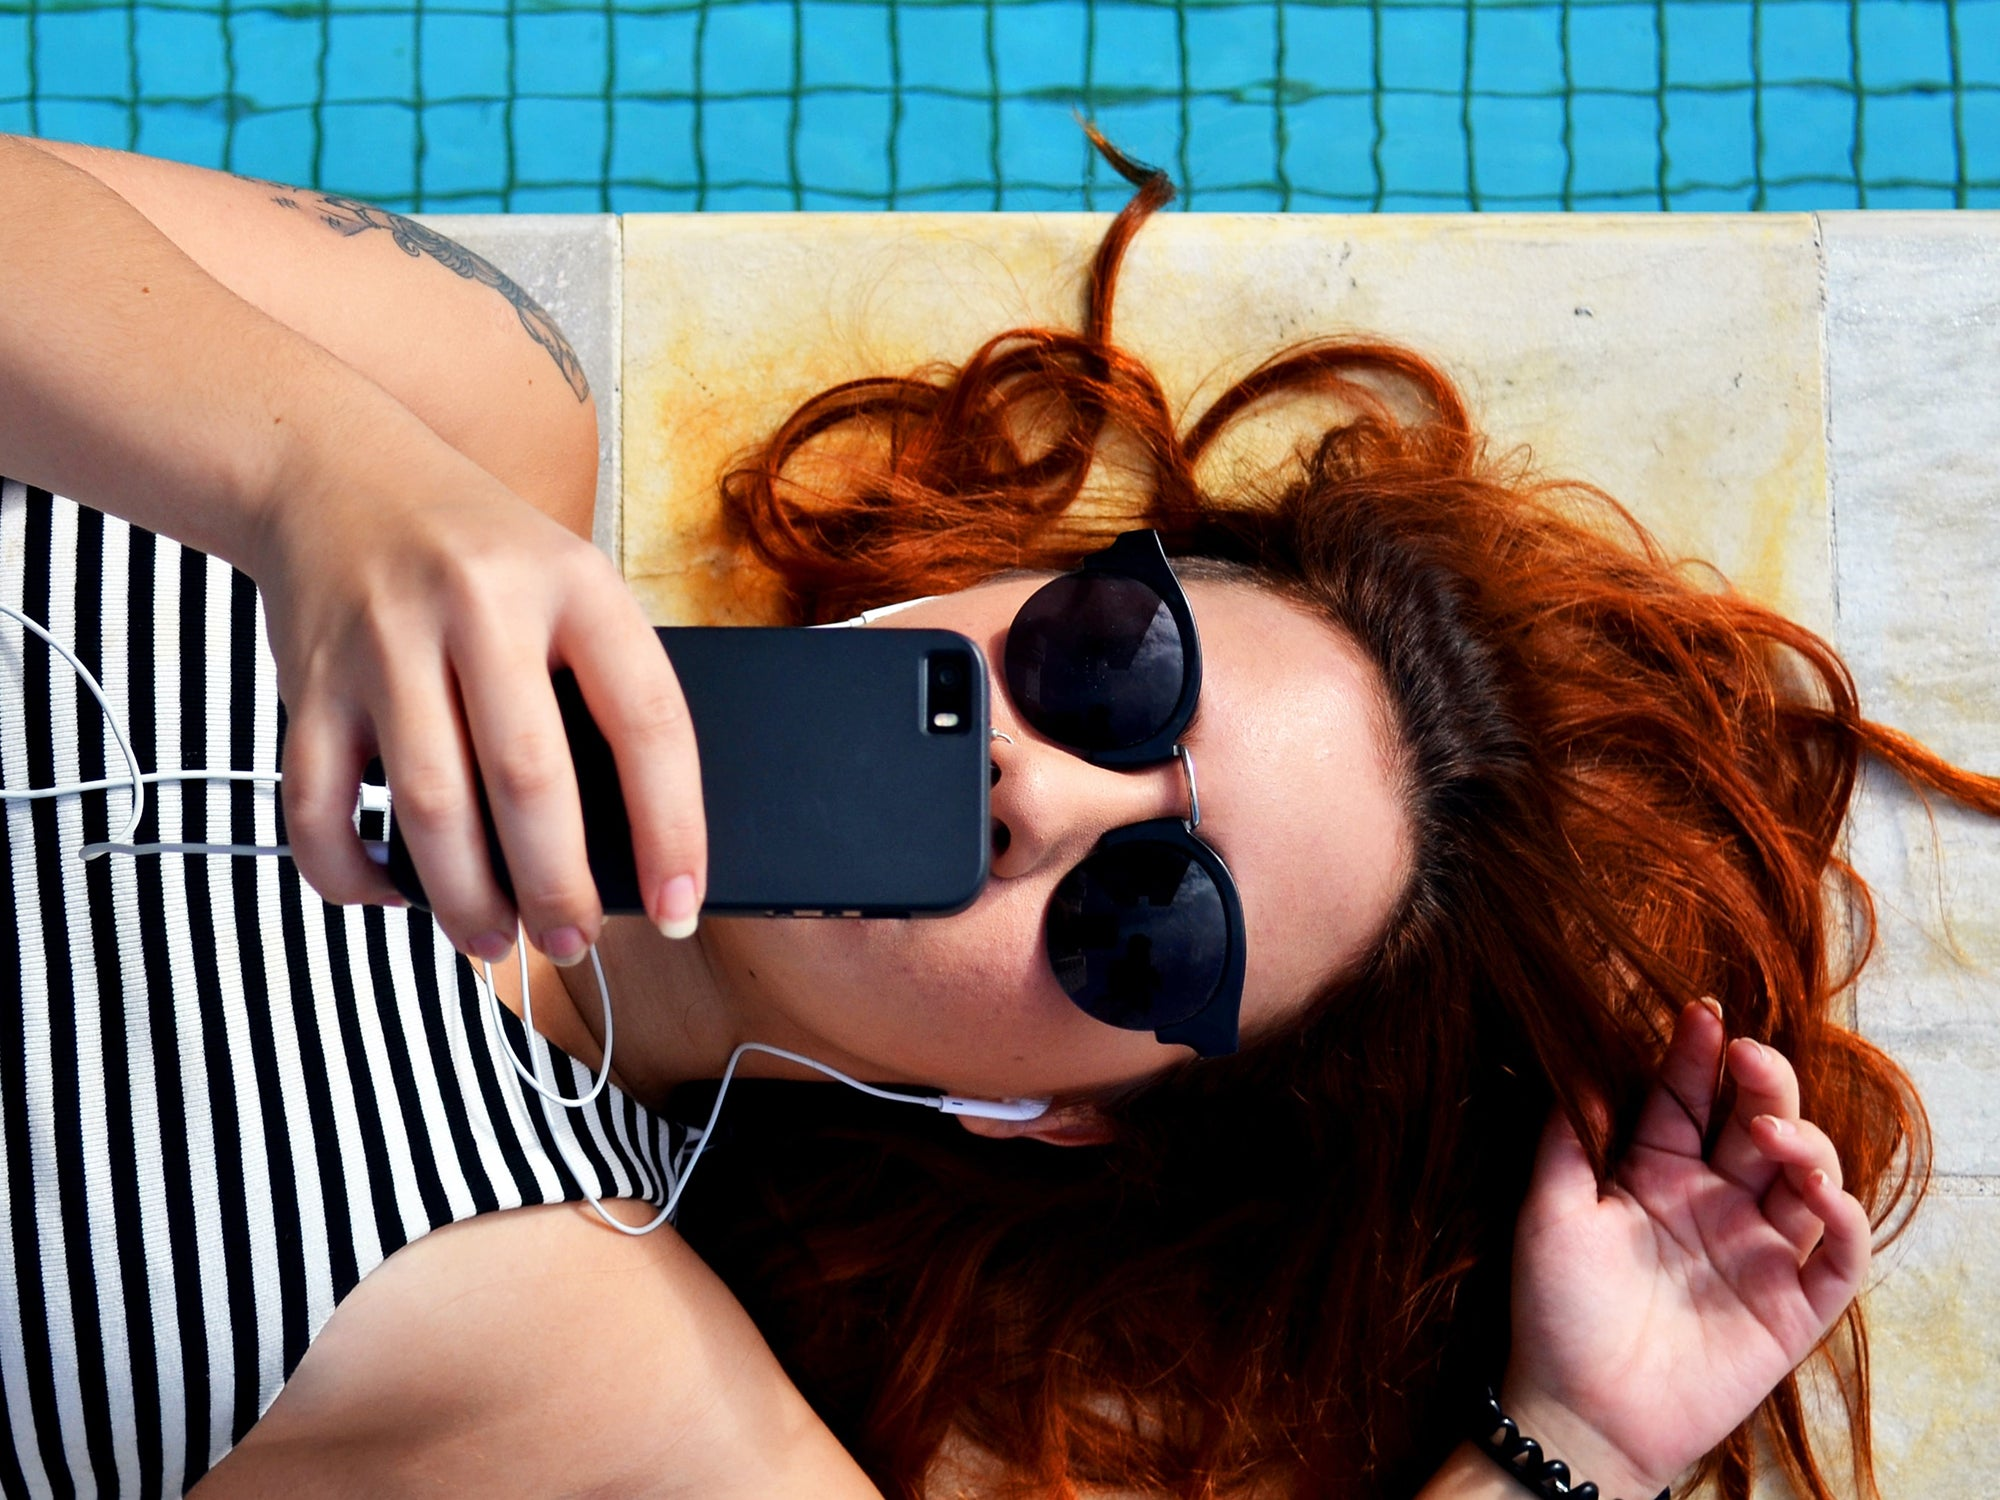 Person looking at phone by the pool